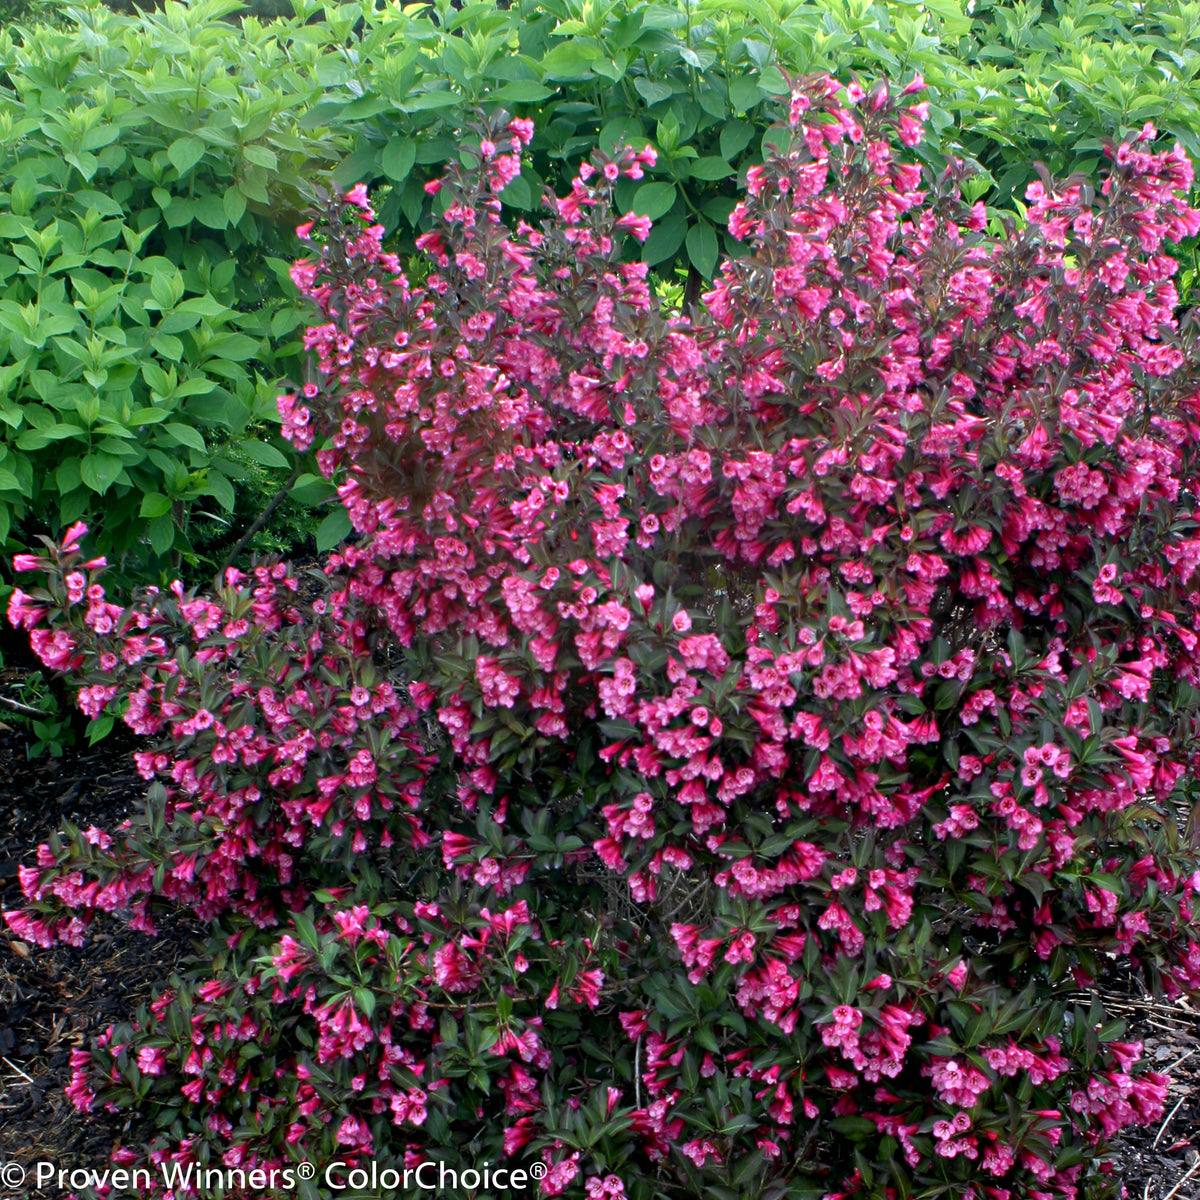 Proven Winners® Shrub Plants|Weigela - Wine & Roses Reblooming 1